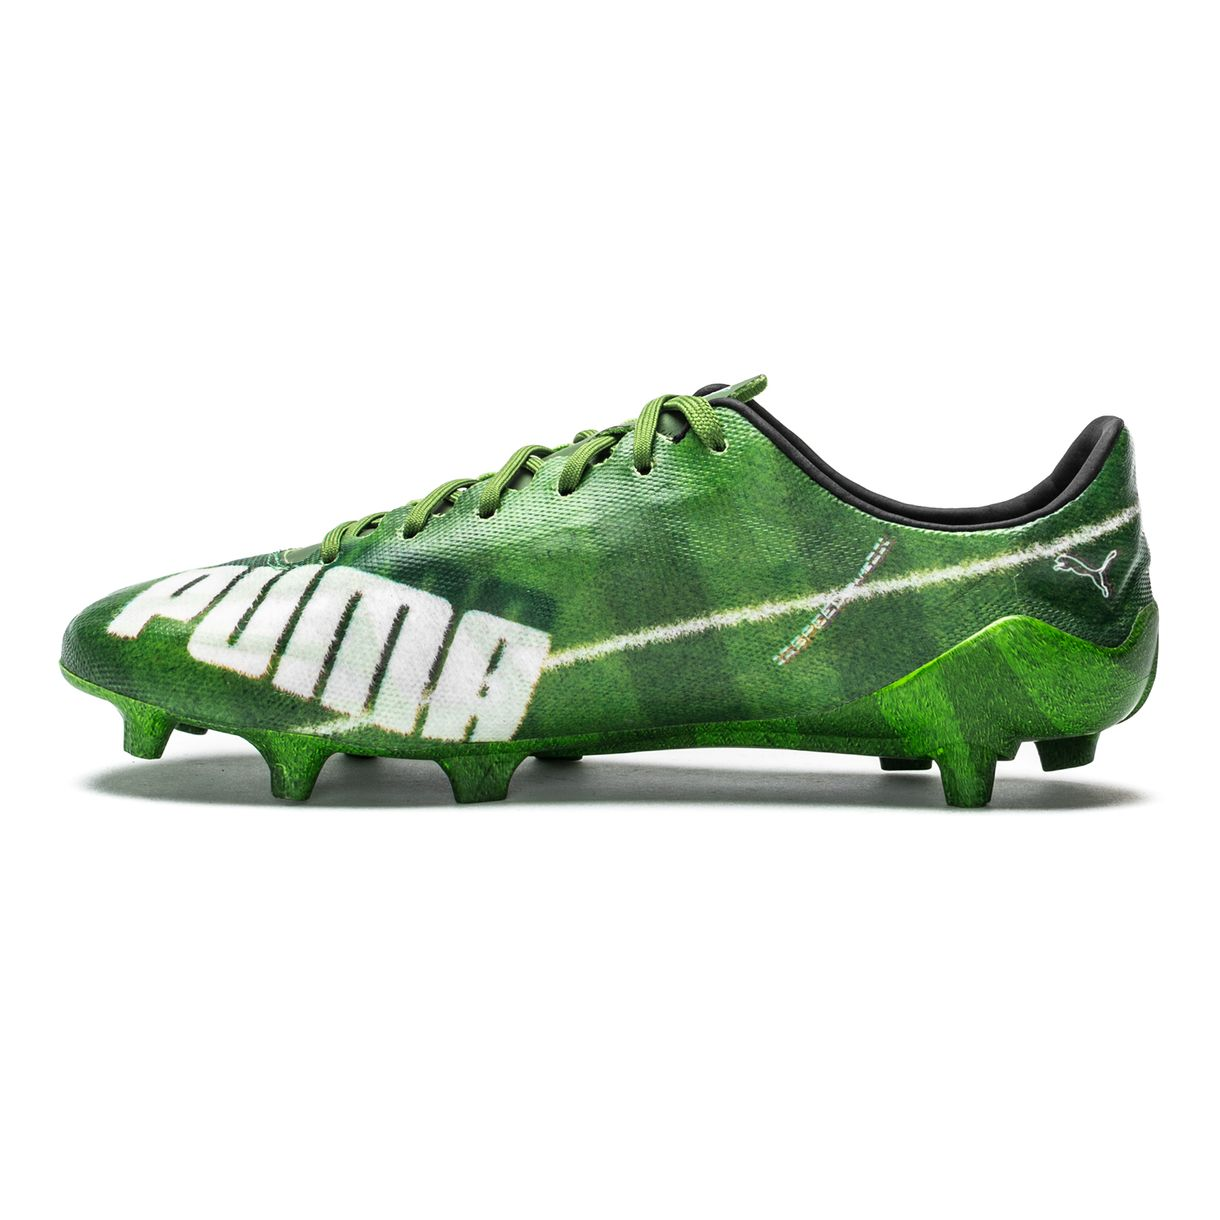 195686f0213 ... Click to enlarge image puma-evospeed-sl-grass-fg-jasmine- ...